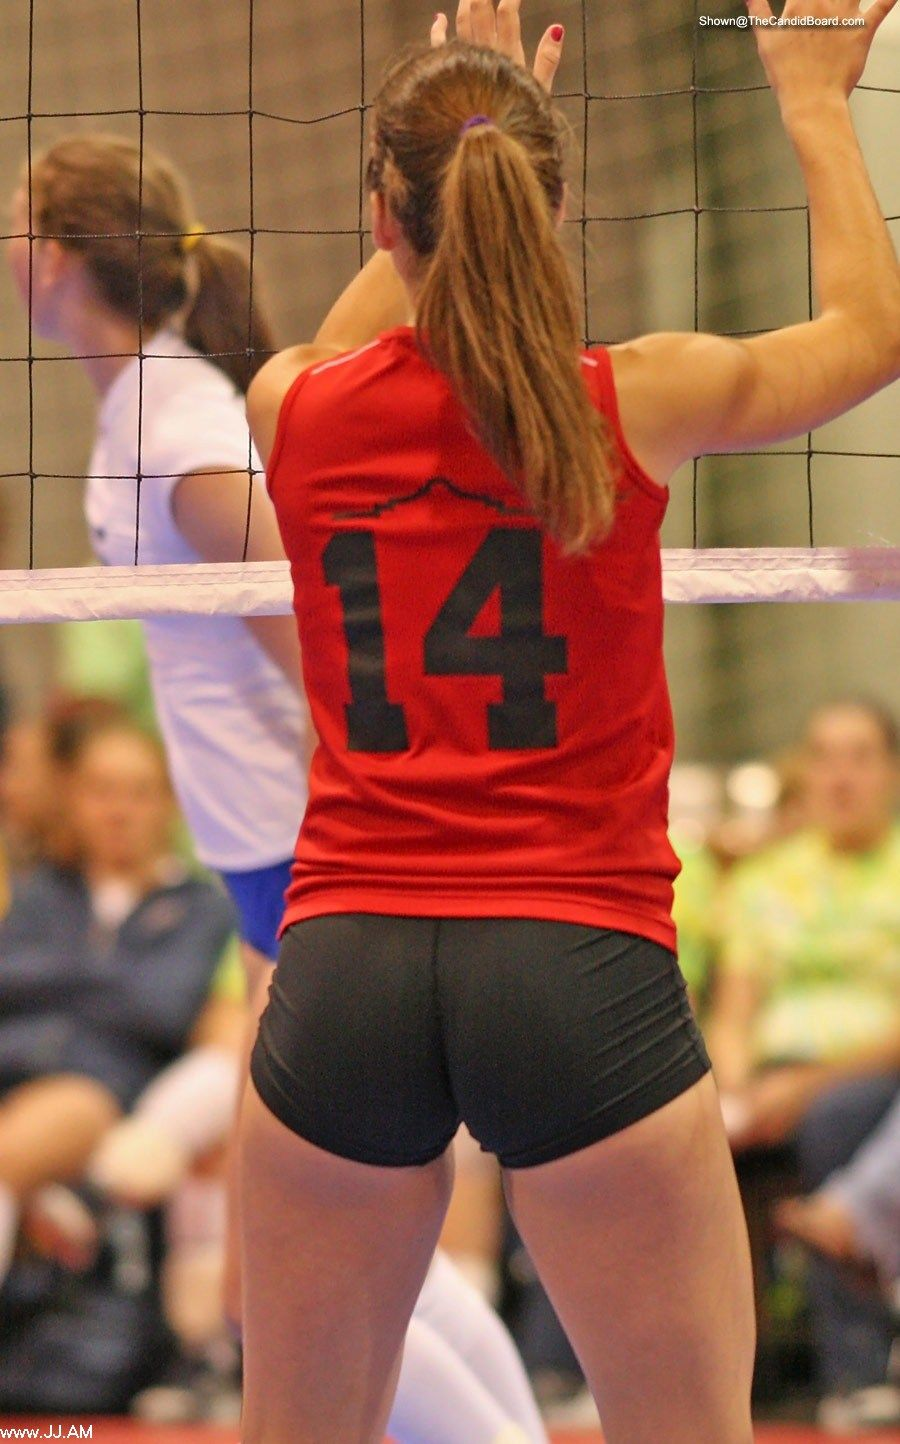 spandex volleyball girls dildo